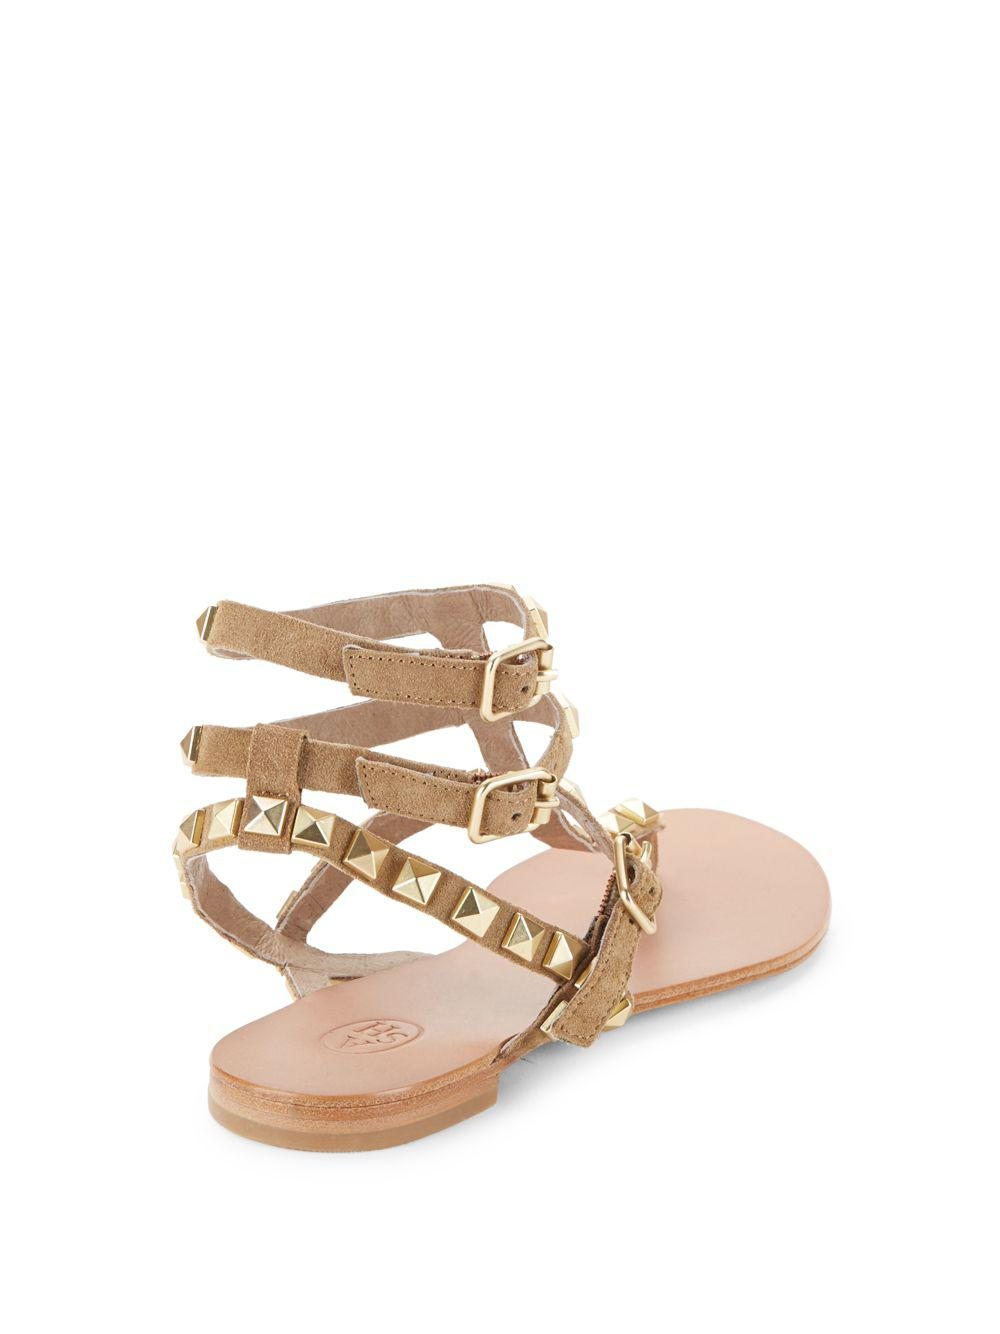 cf9254a7753b Lyst - Ash Mumbaia Studded Strappy Sandals in Brown - Save 17%